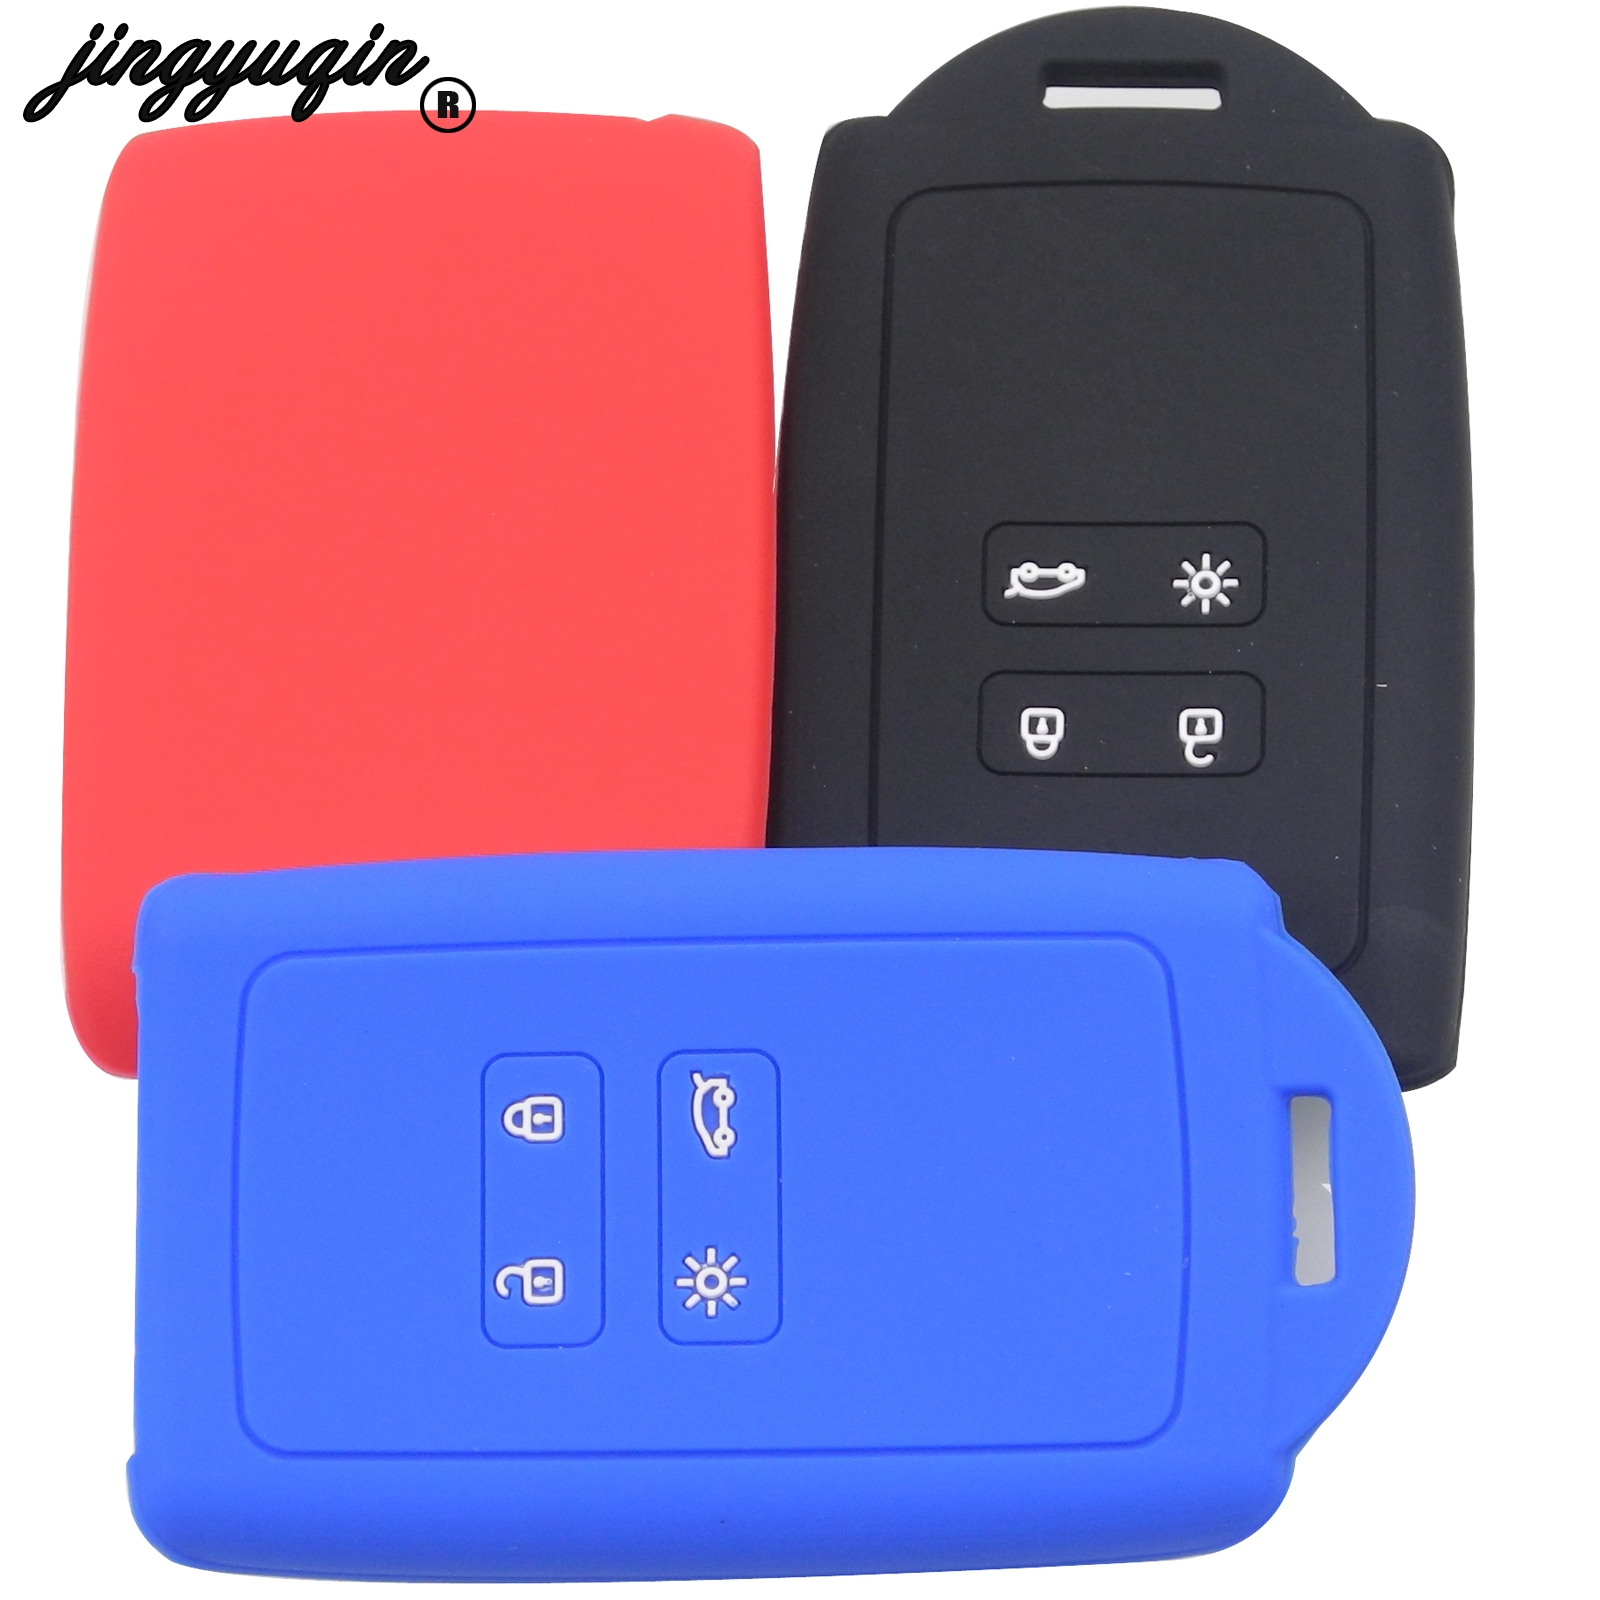 Jingyuqin Silicone Key Fob Cover Case Holder For Renault Koleos Kadjar Megan 2016-2017 Card Remote Keyless